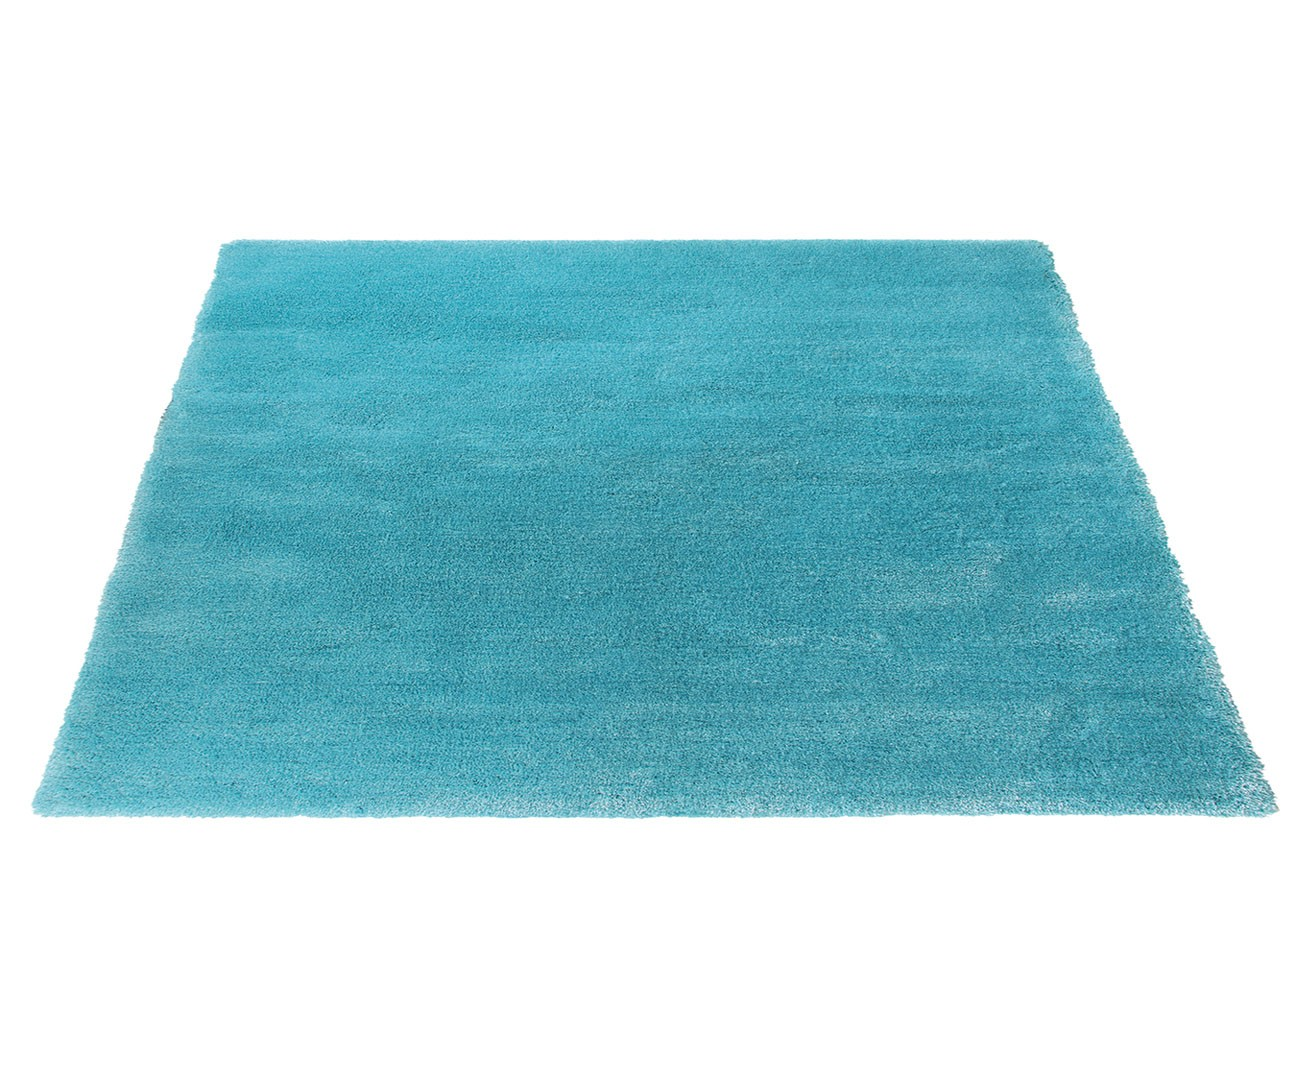 tapis shaggy bleu turquoise pas cher. Black Bedroom Furniture Sets. Home Design Ideas